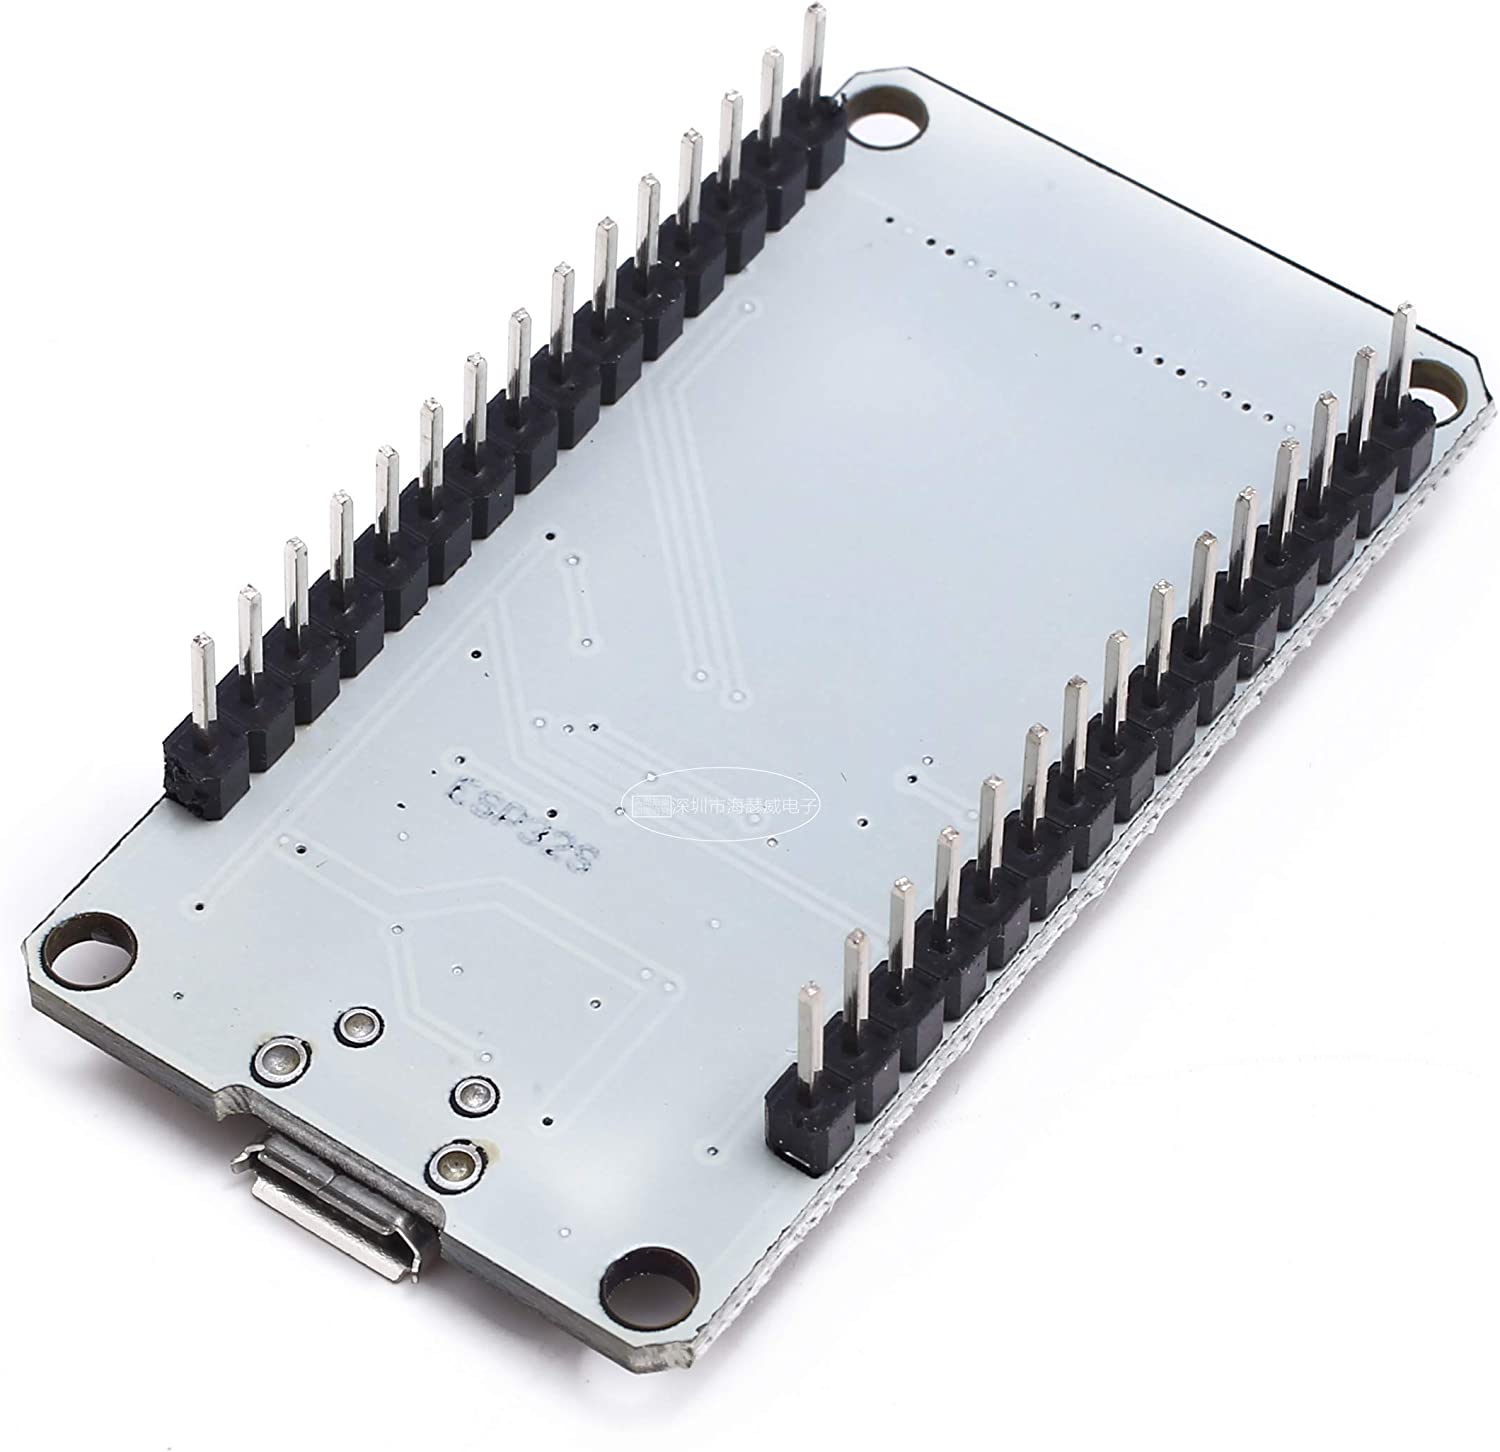 1 pc Bluetooth Dual Cores ESP32s Antenna Module Board SongHe ESP32 Development Board 2.4GHz Dual-Mode WiFi